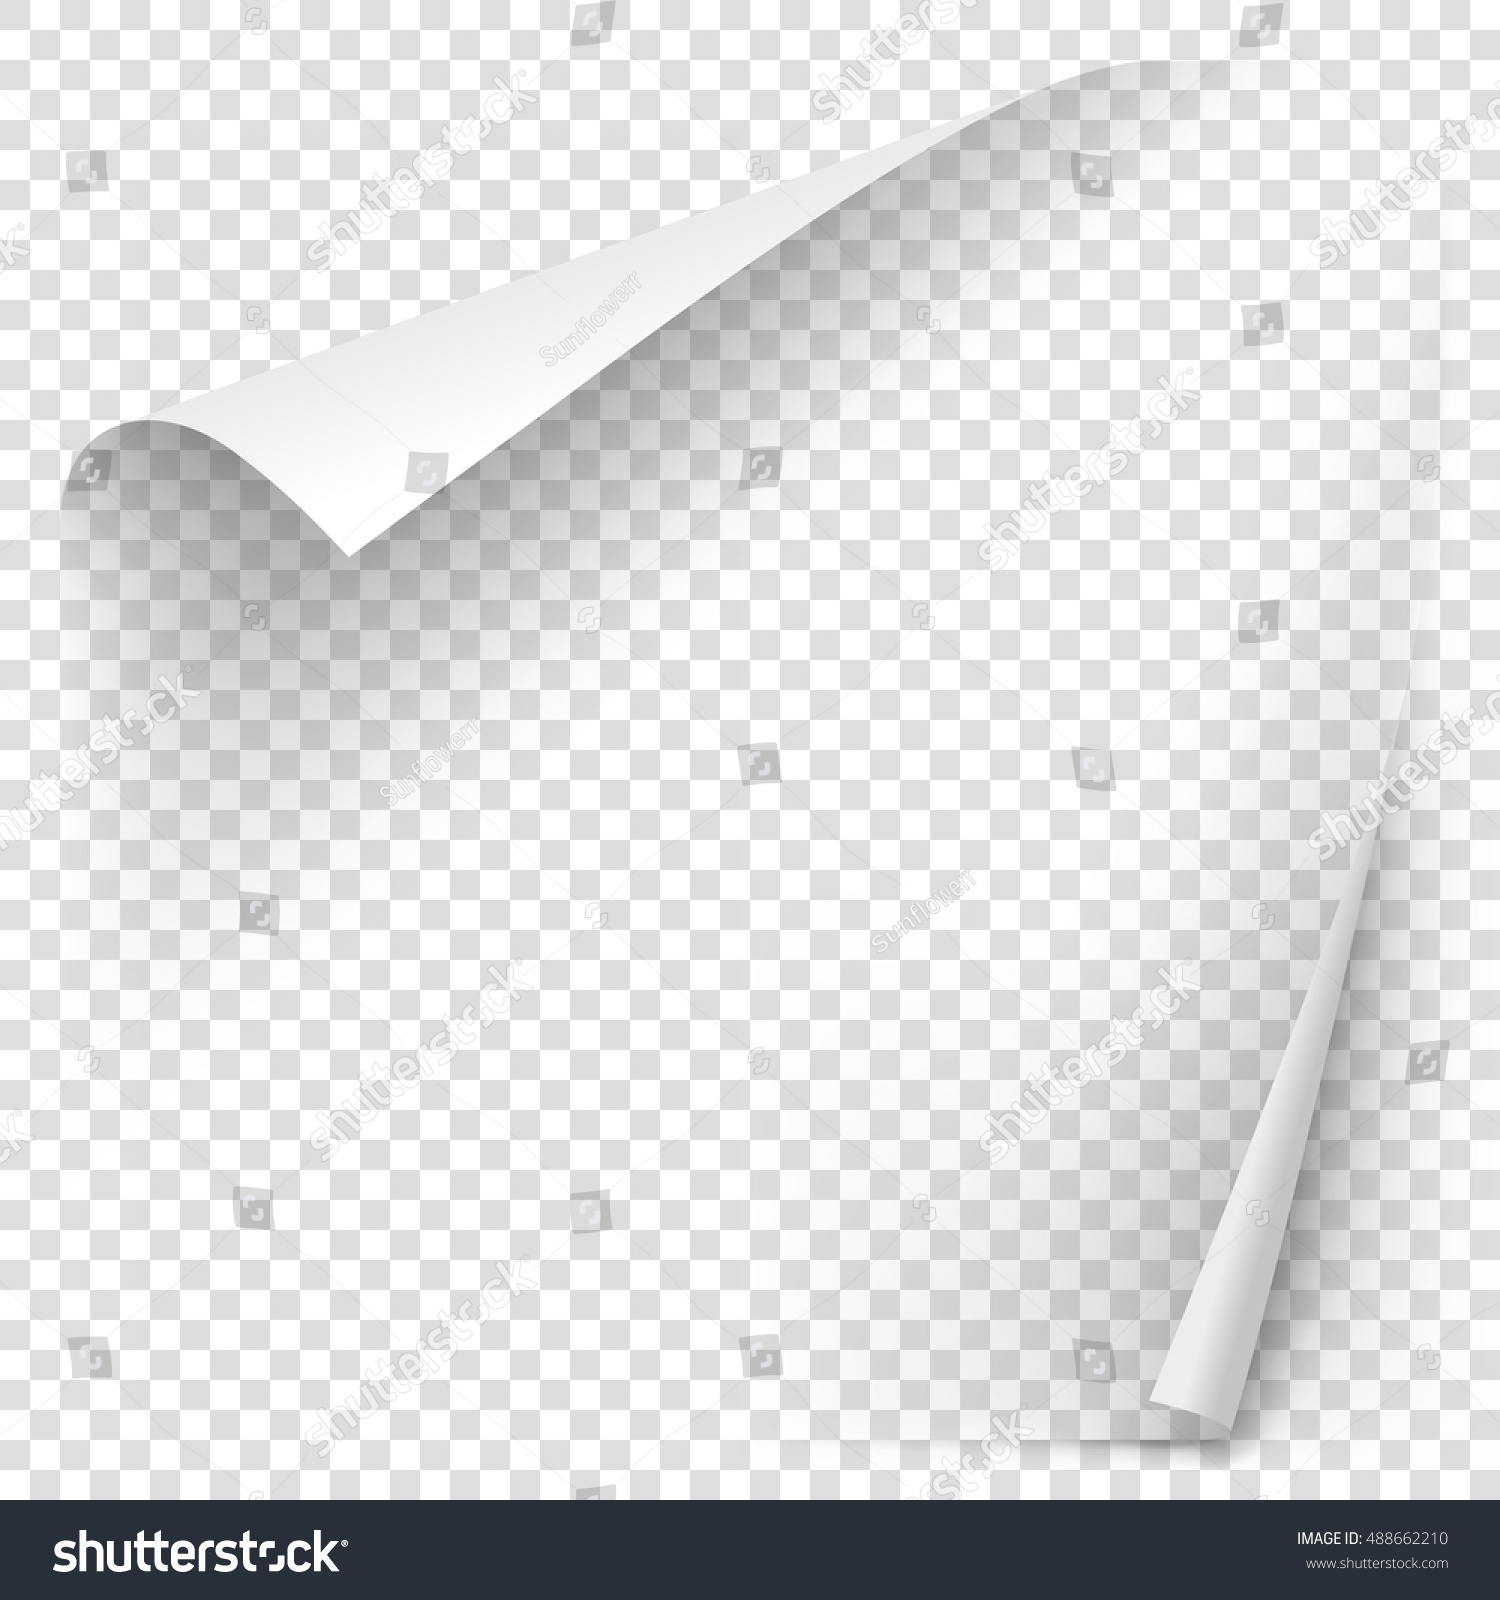 white gradient paper curl shadow isolated stock vector  white gradient paper curl shadow isolated on transparent background vector sticker paper note for